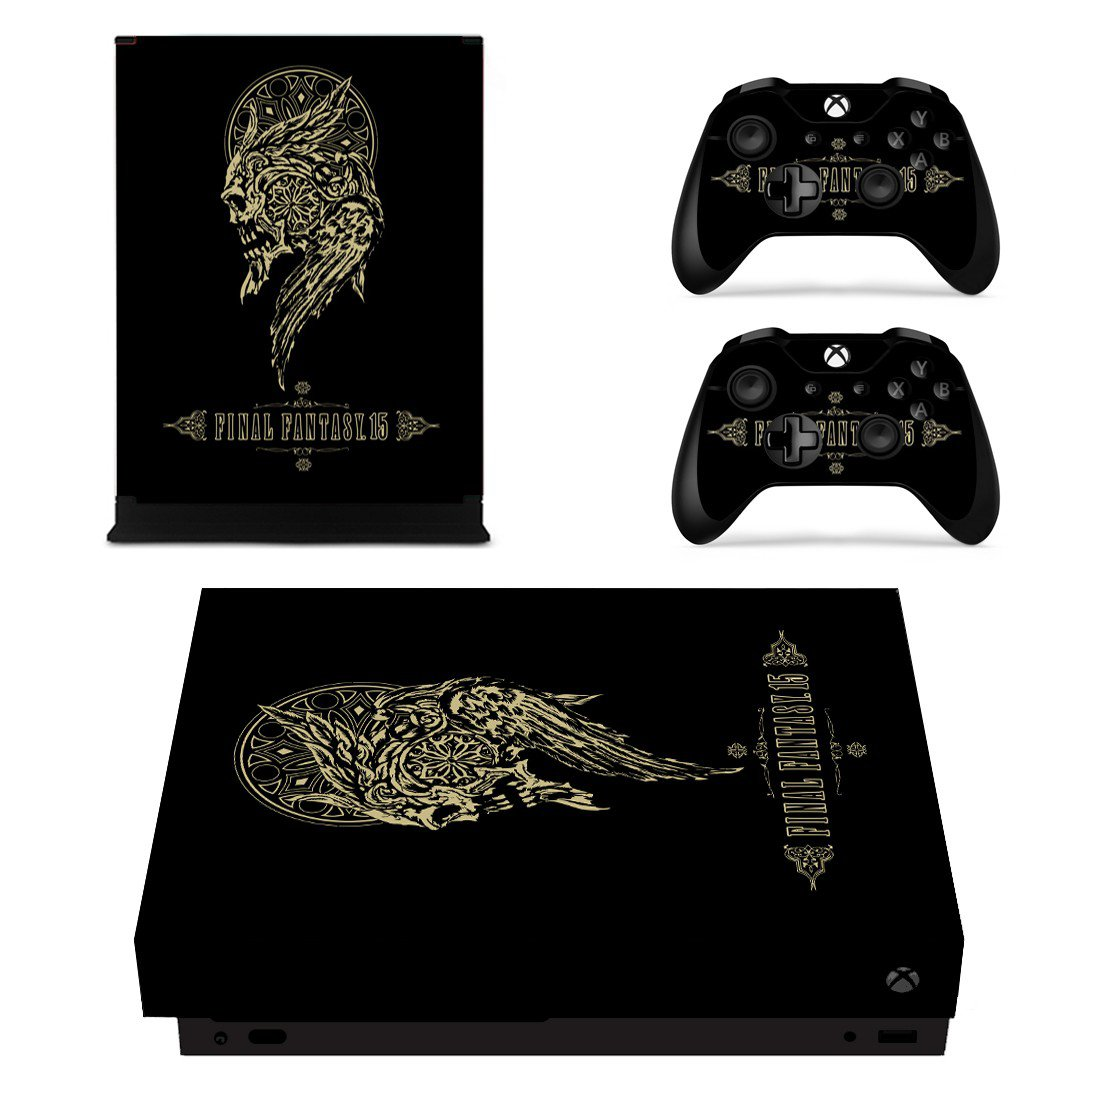 Final Fantasy 15 skin decal for Xbox one X console and controllers